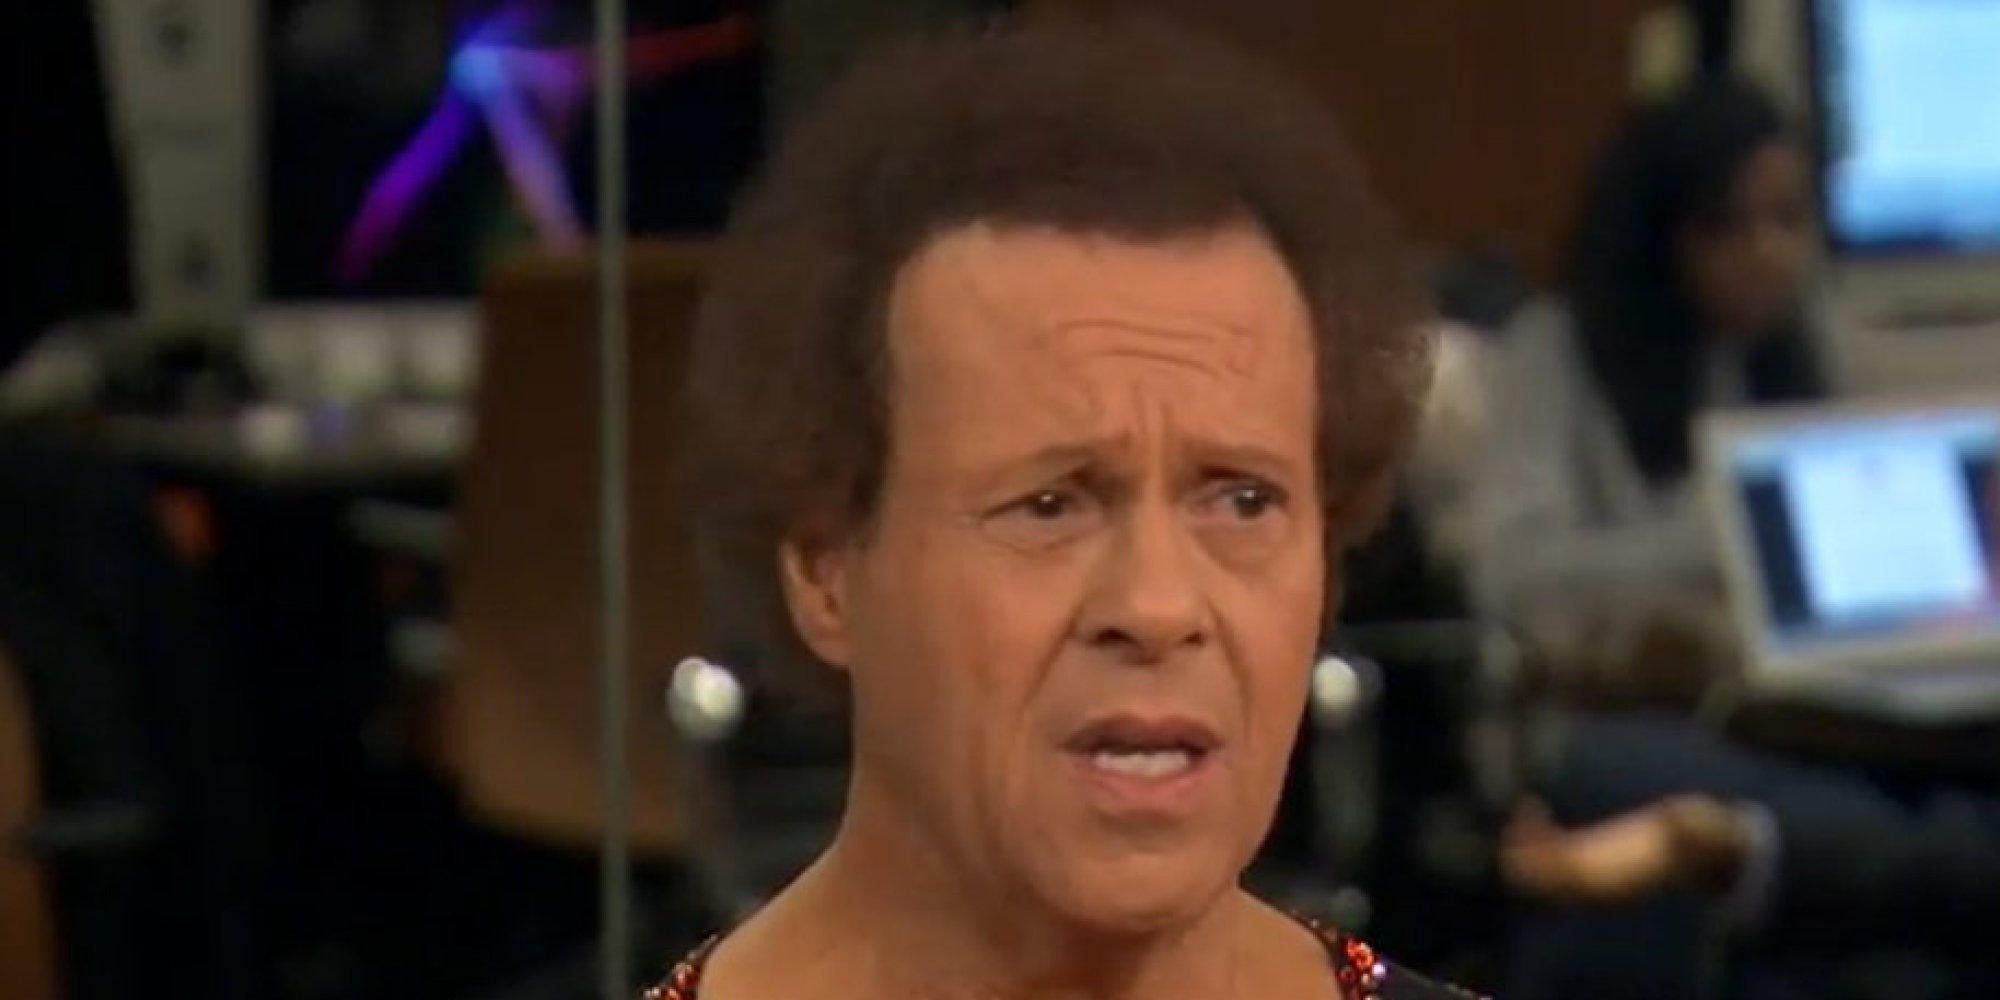 richard simmons whose line is it anyway